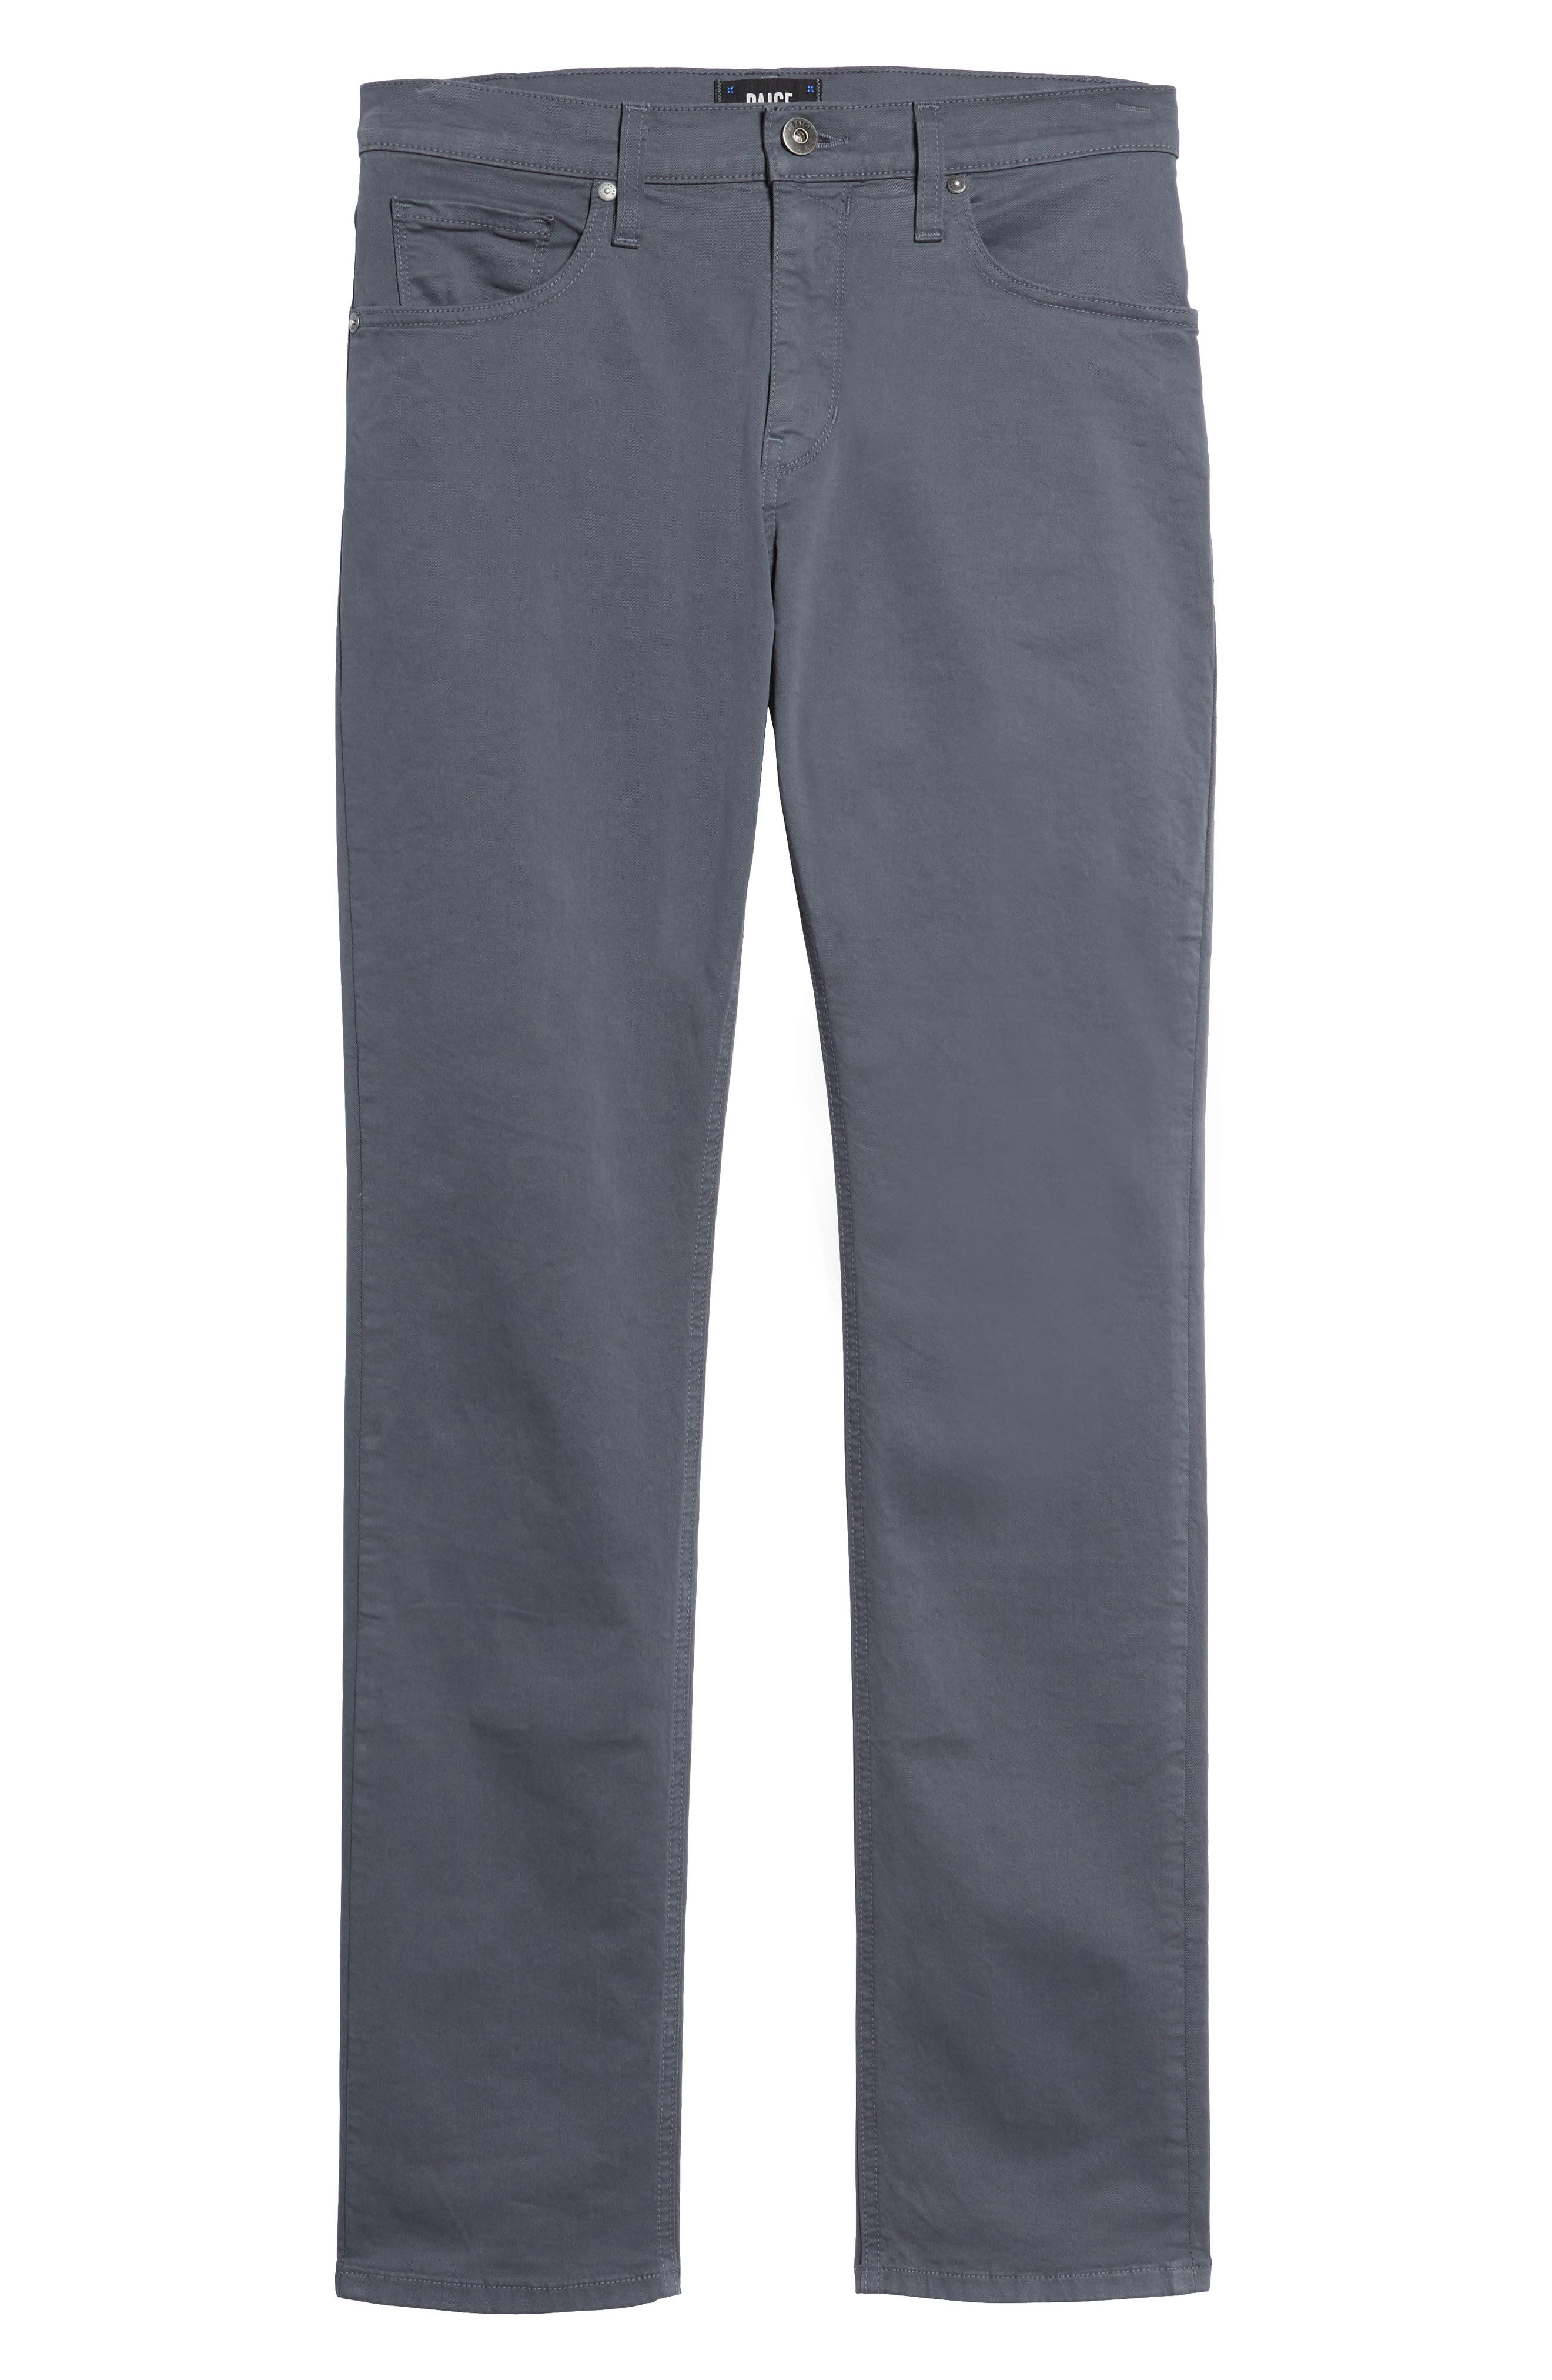 Federal Slim Straight Leg Twill Pants,                             Alternate thumbnail 6, color,                             Moon Shade